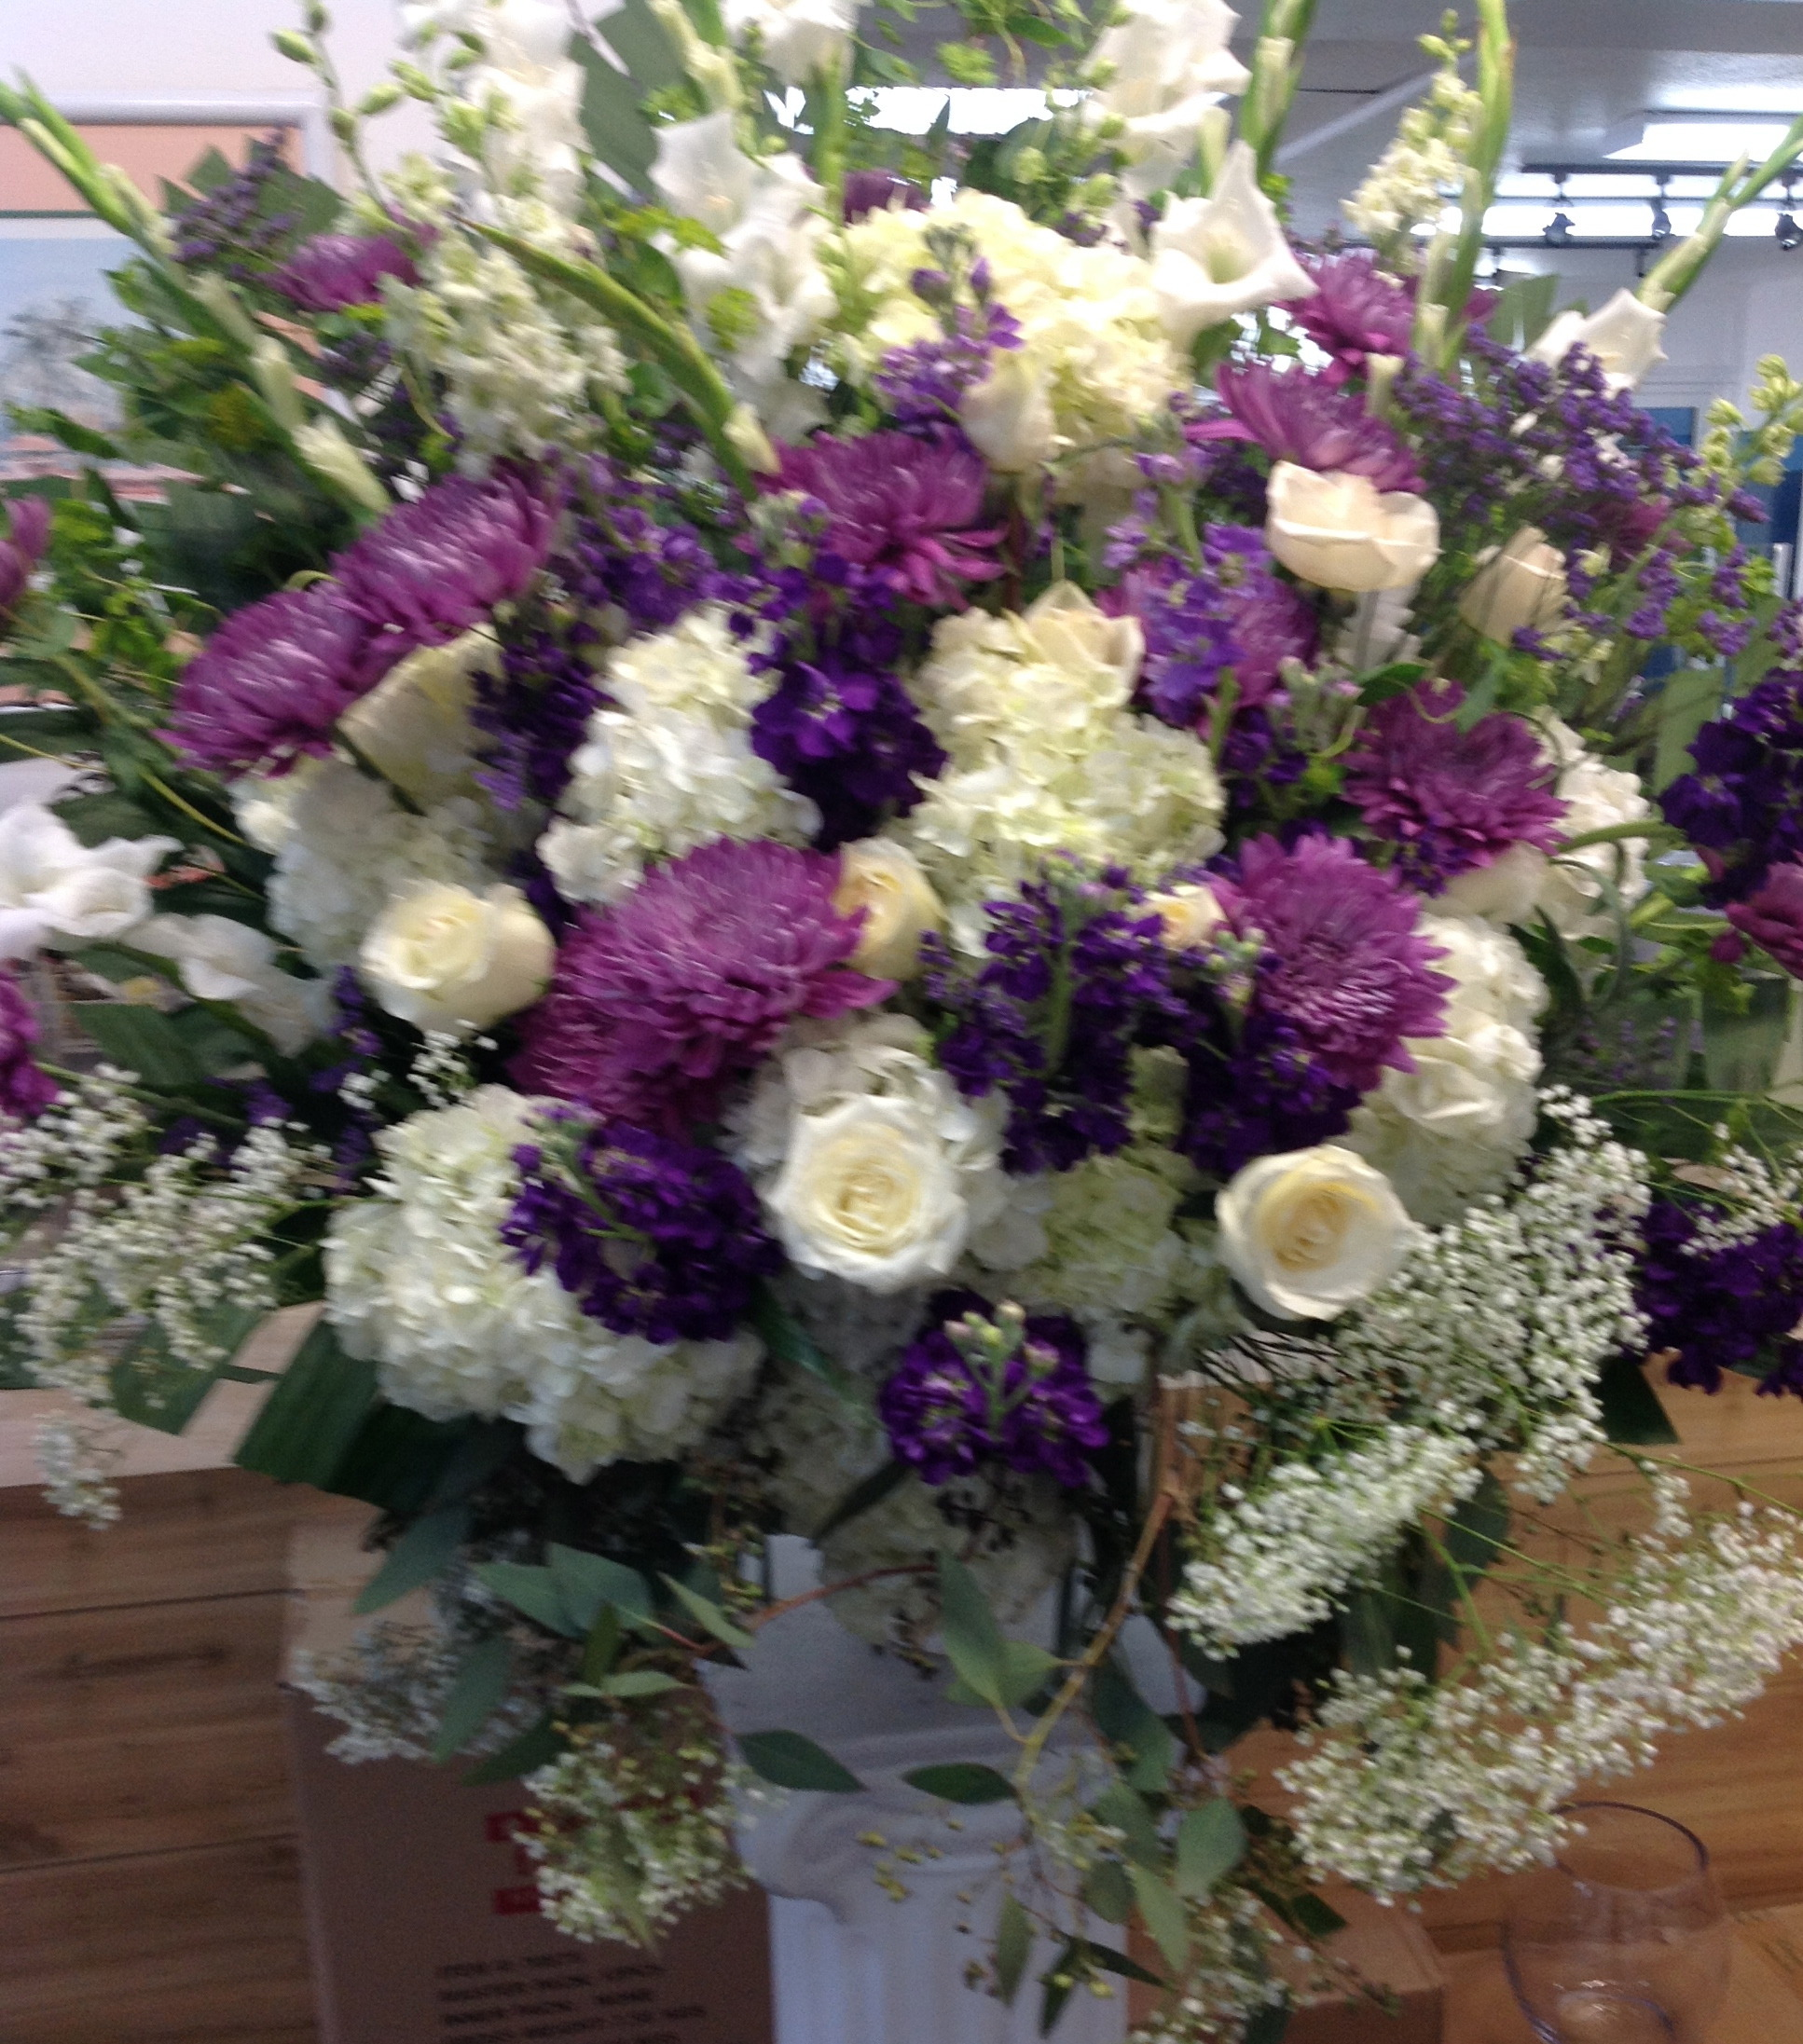 Attractive Massive Flower Bouquets Image - Images for wedding gown ...